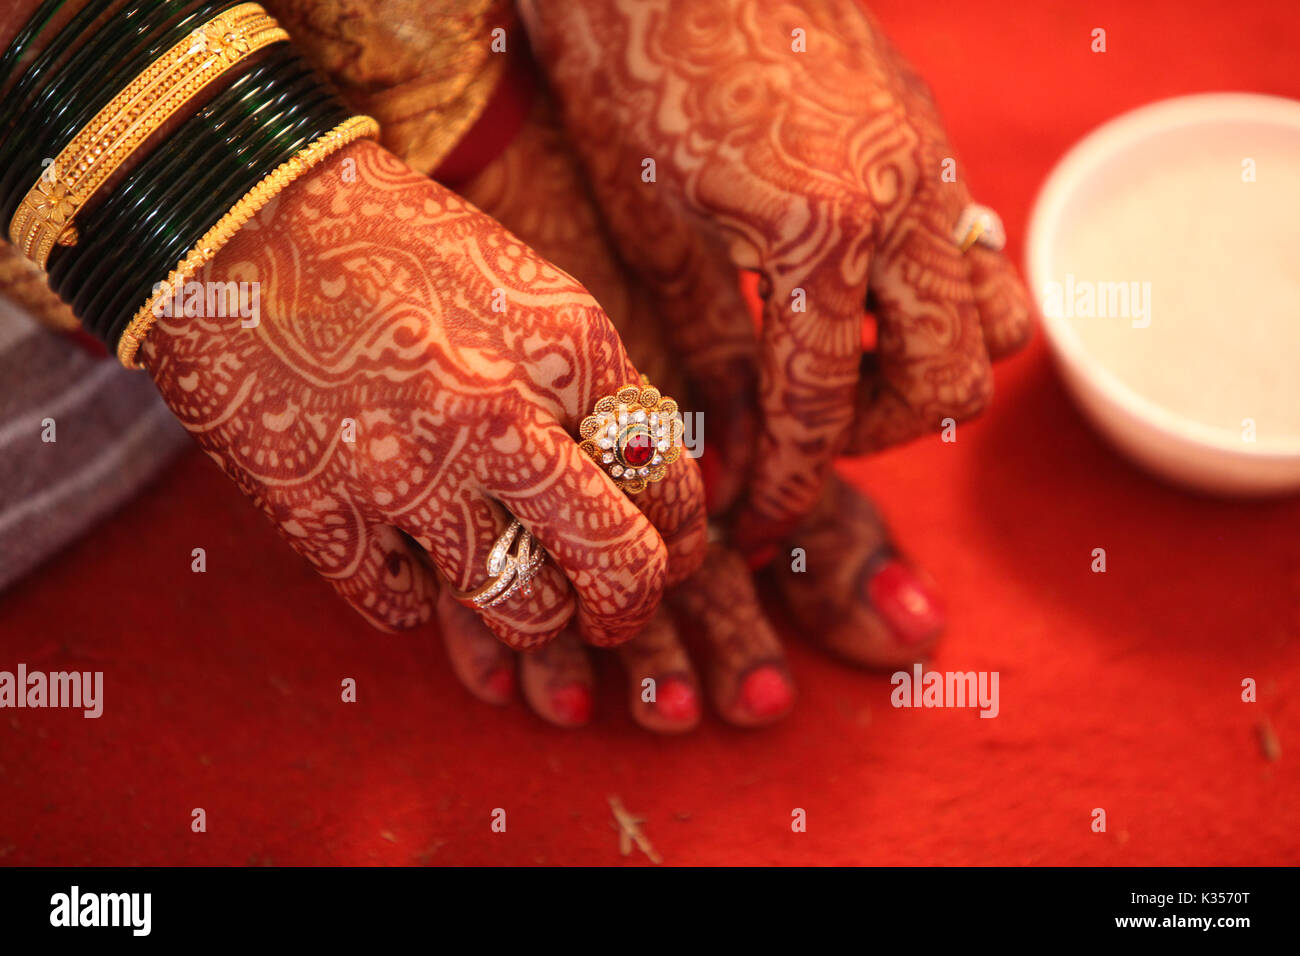 A hindu bride adjusting the traditional ring in her feet with her hand having beautiful mehendi design - Stock Image